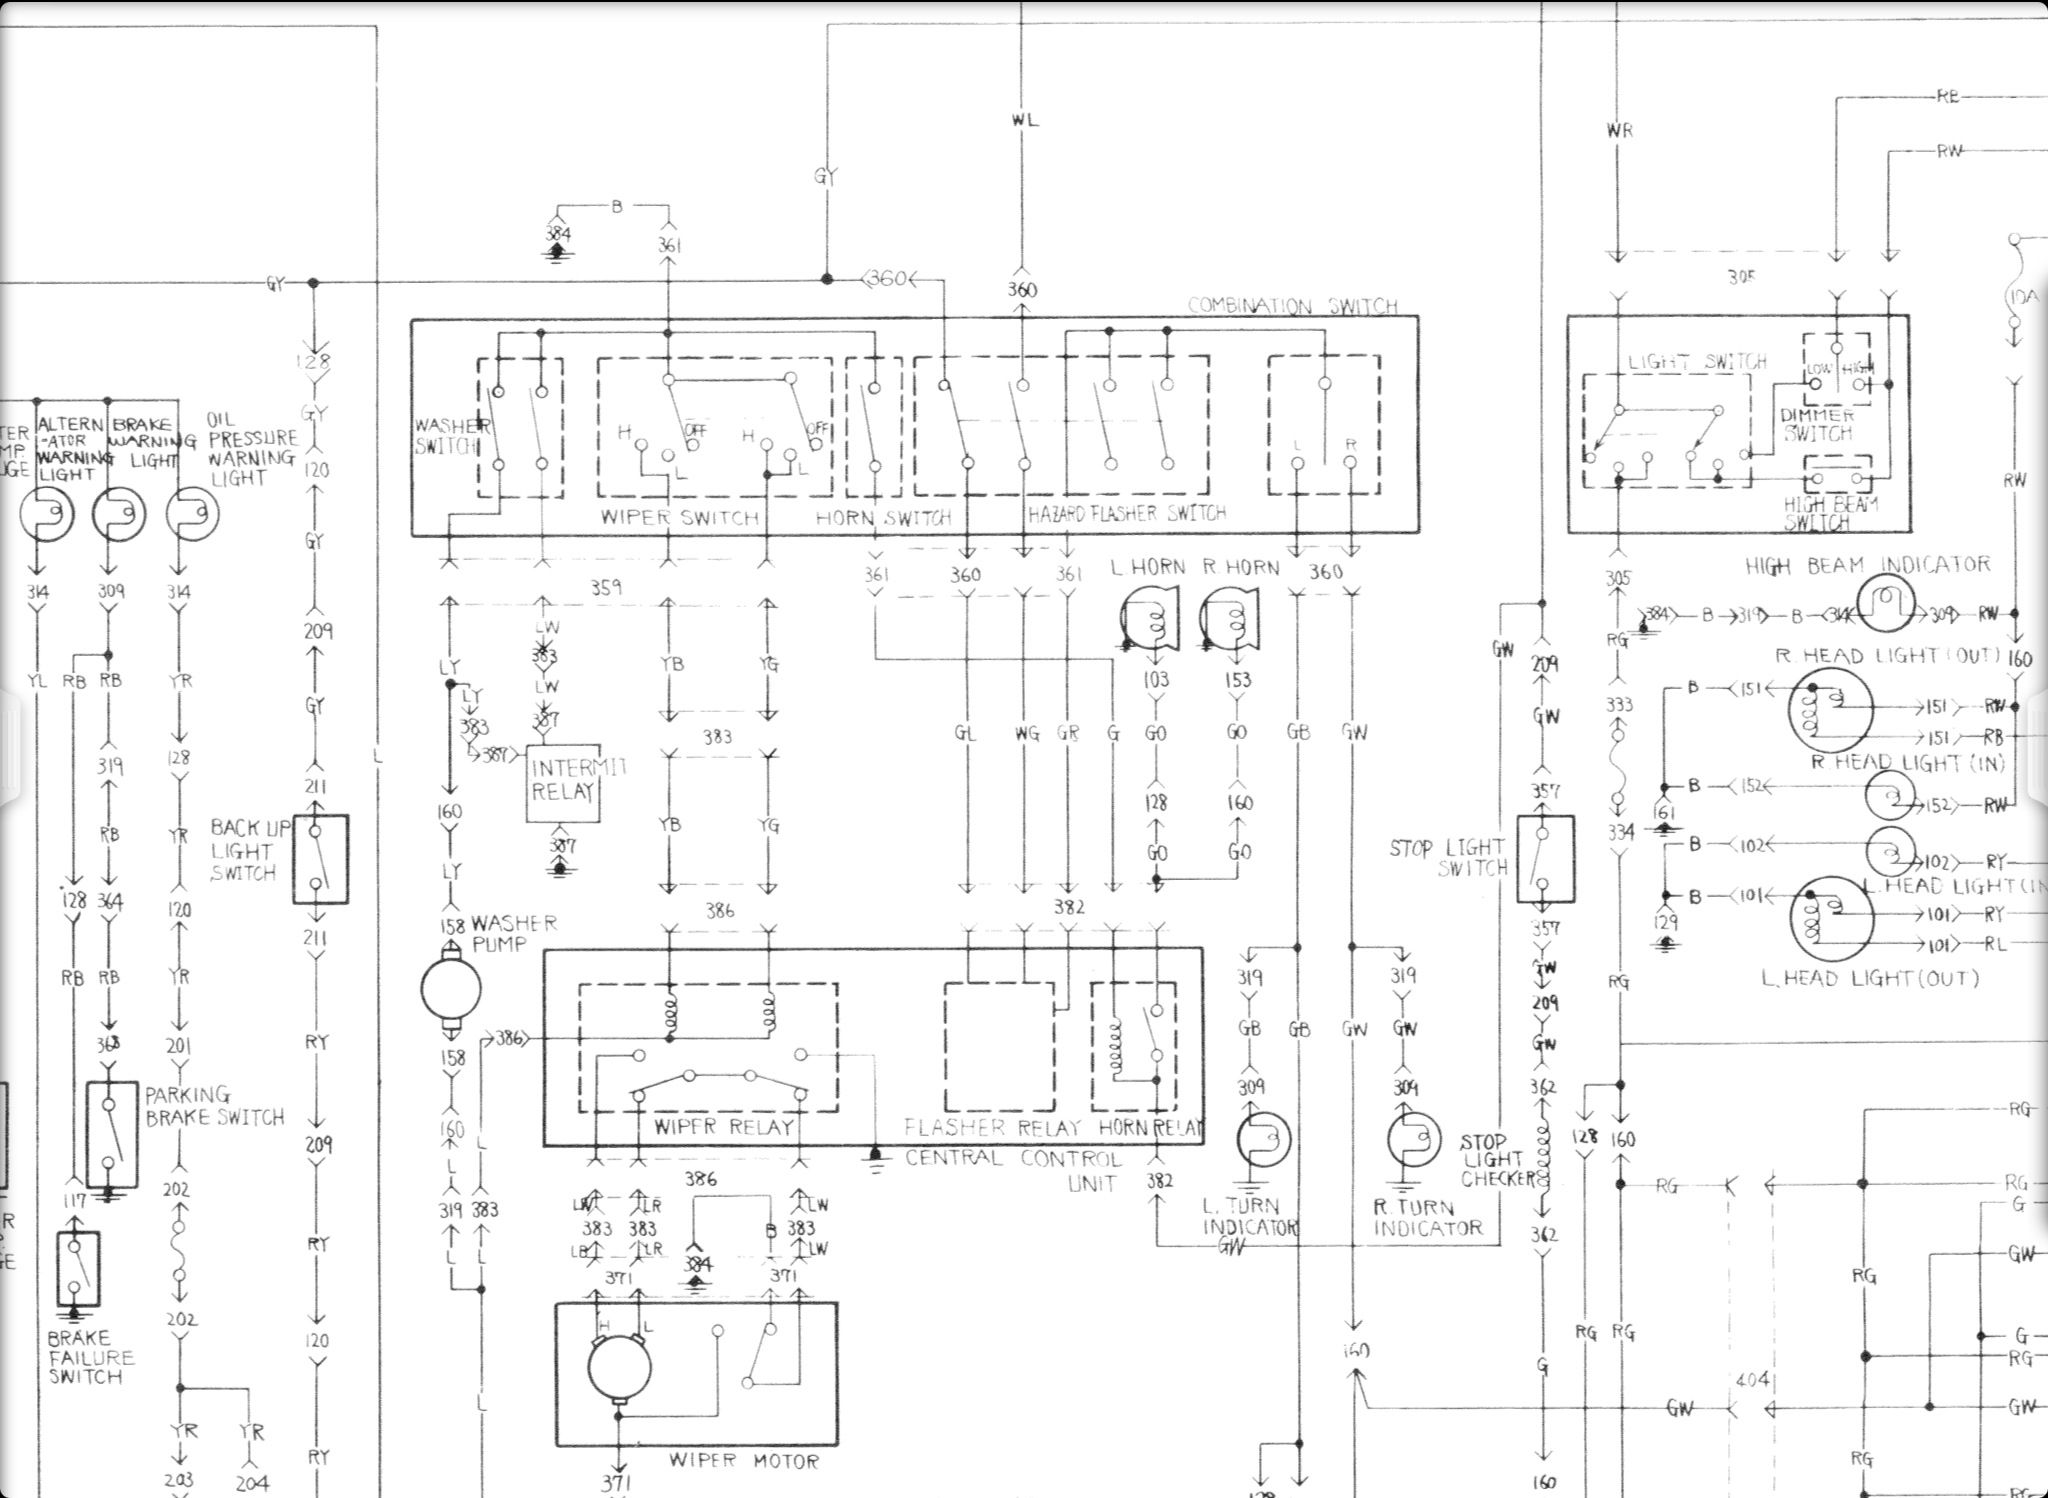 Mazda Rx4 Wiring Diagram Rx3 Register And Records Page 136 Ausrotary Vactor Diagrams